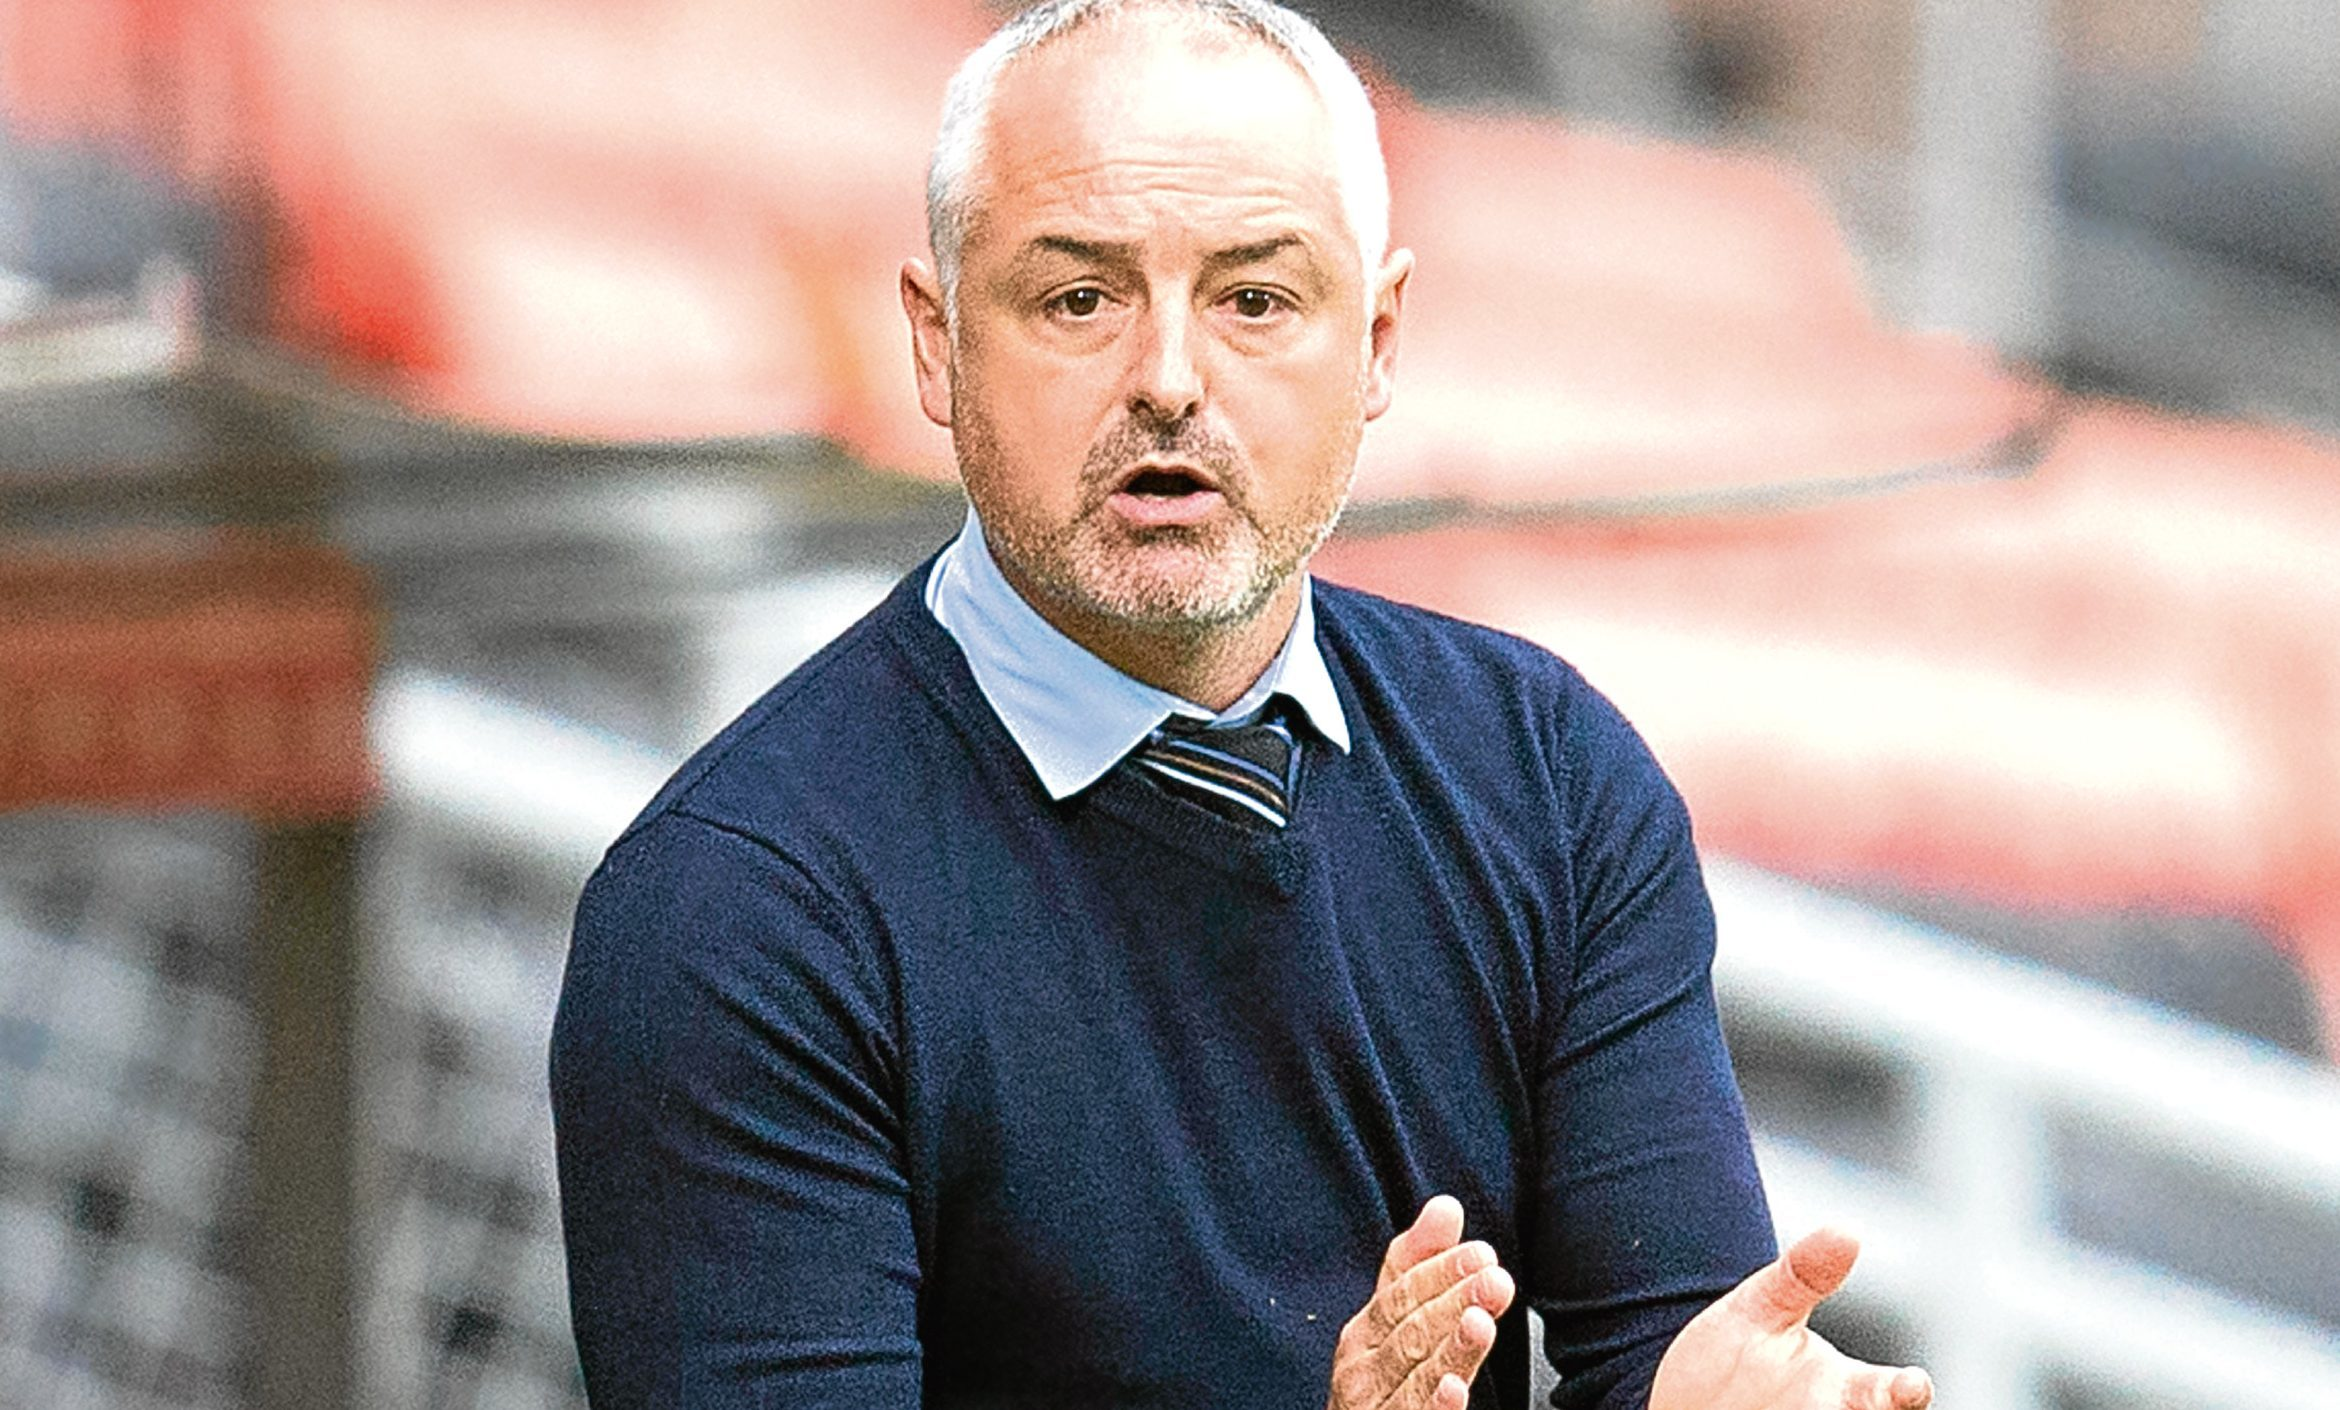 Dundee United manager Ray McKinnon points to teamwork for his side's recent excellent defensive displays.